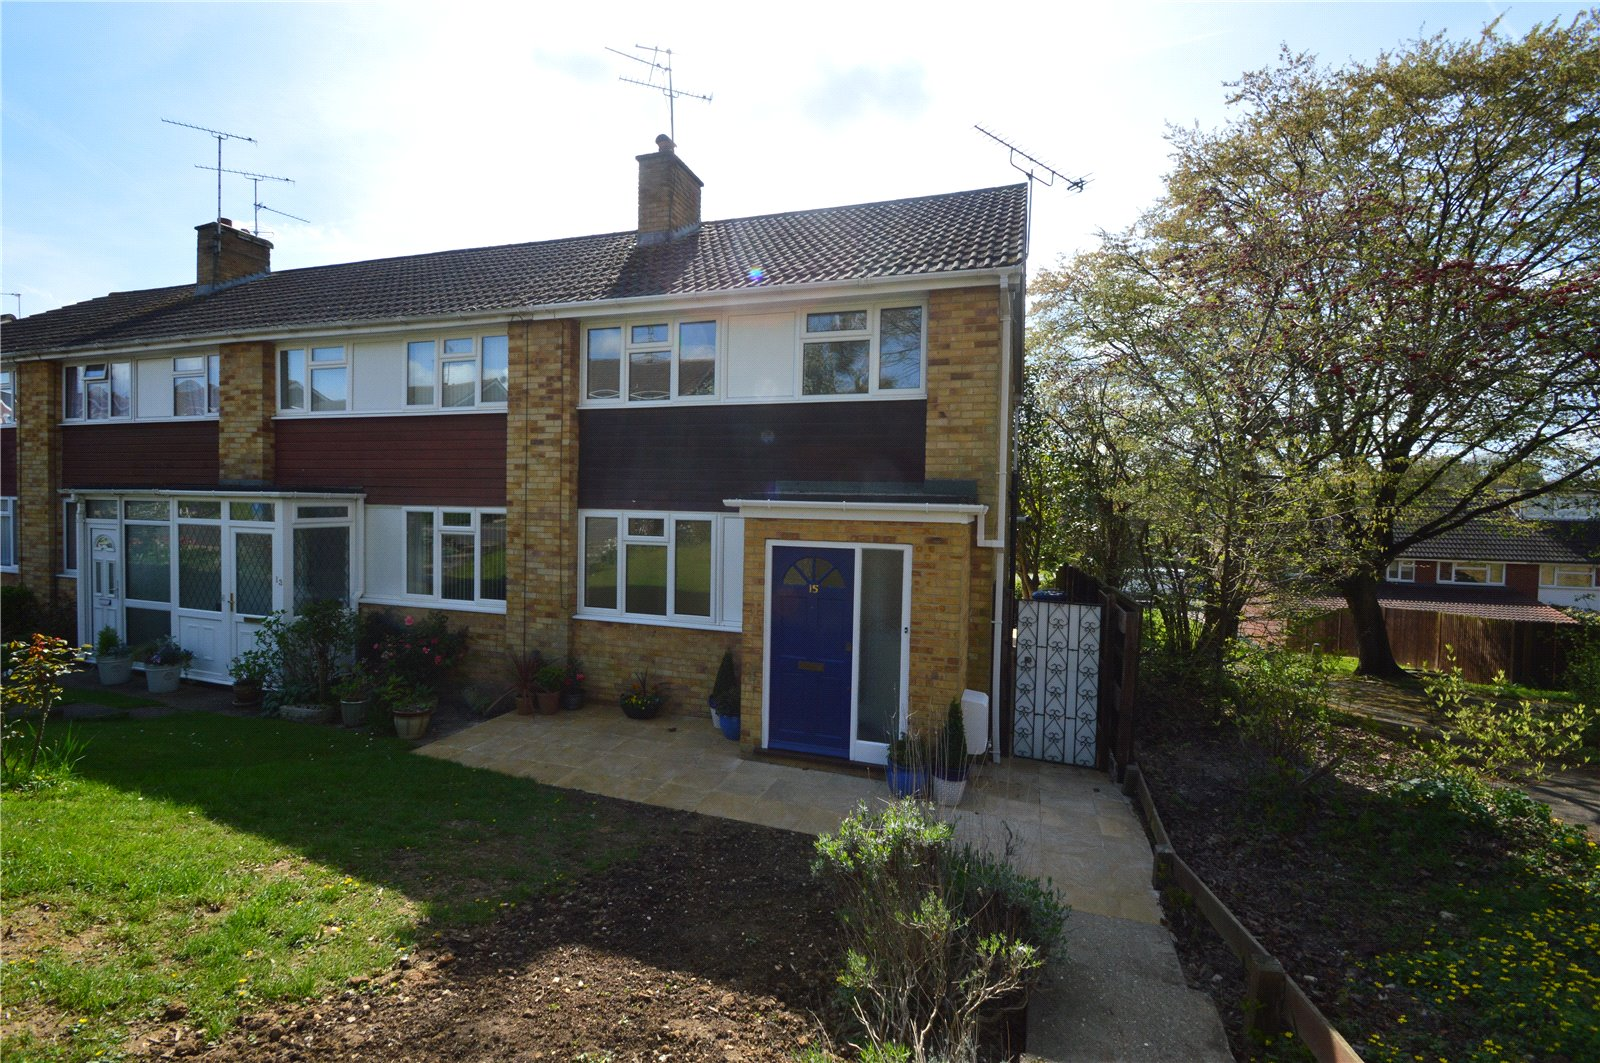 3 Bedrooms End Of Terrace House for sale in Wentworth Crescent, Maidenhead, Berkshire, SL6